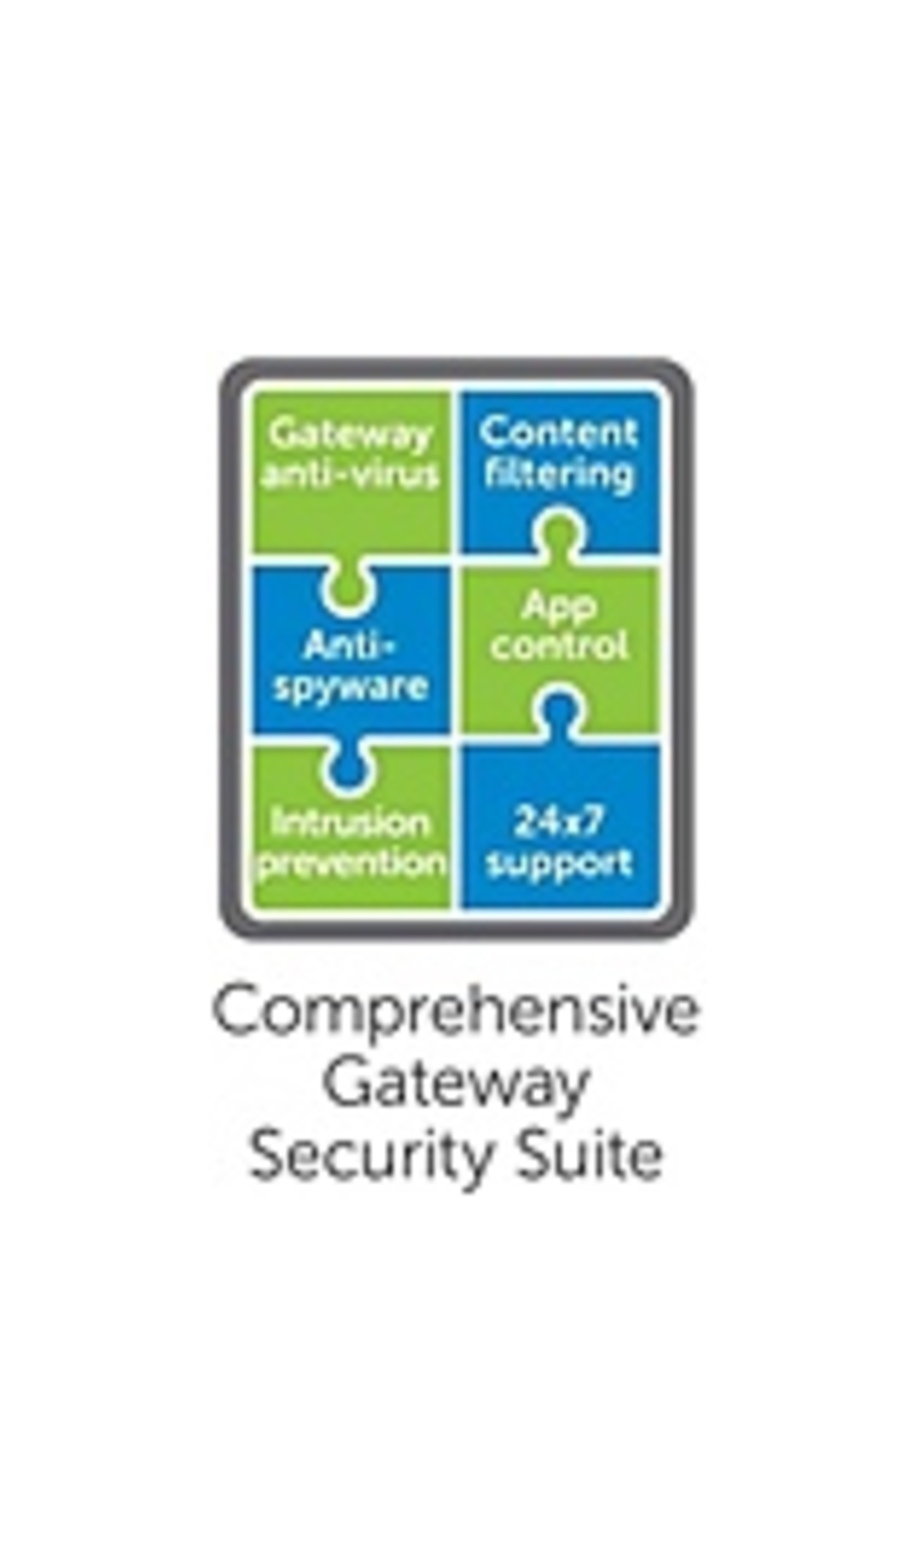 SonicWall Comprehensive Gateway Security Suite Bundle - SonicWALL SOHO Network Security Firewall - Subscription License 1 Appliance